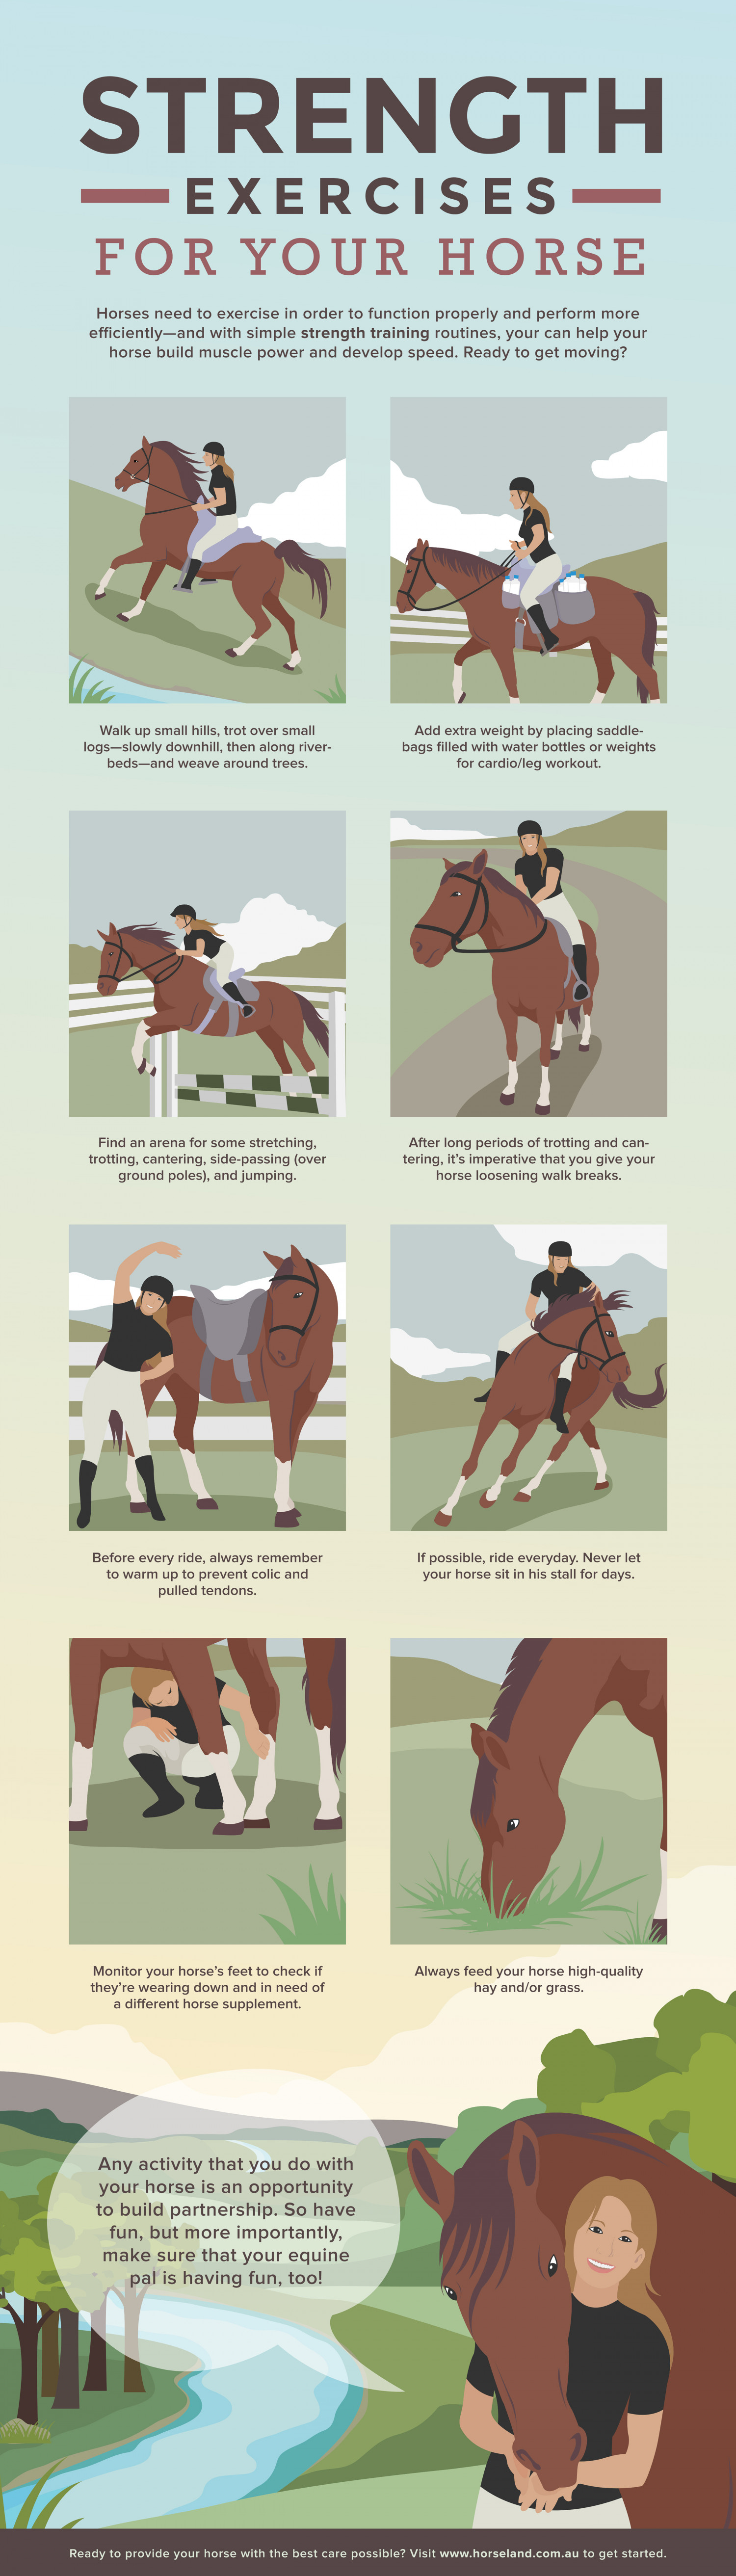 Strength Exercises for Your Horse Infographic